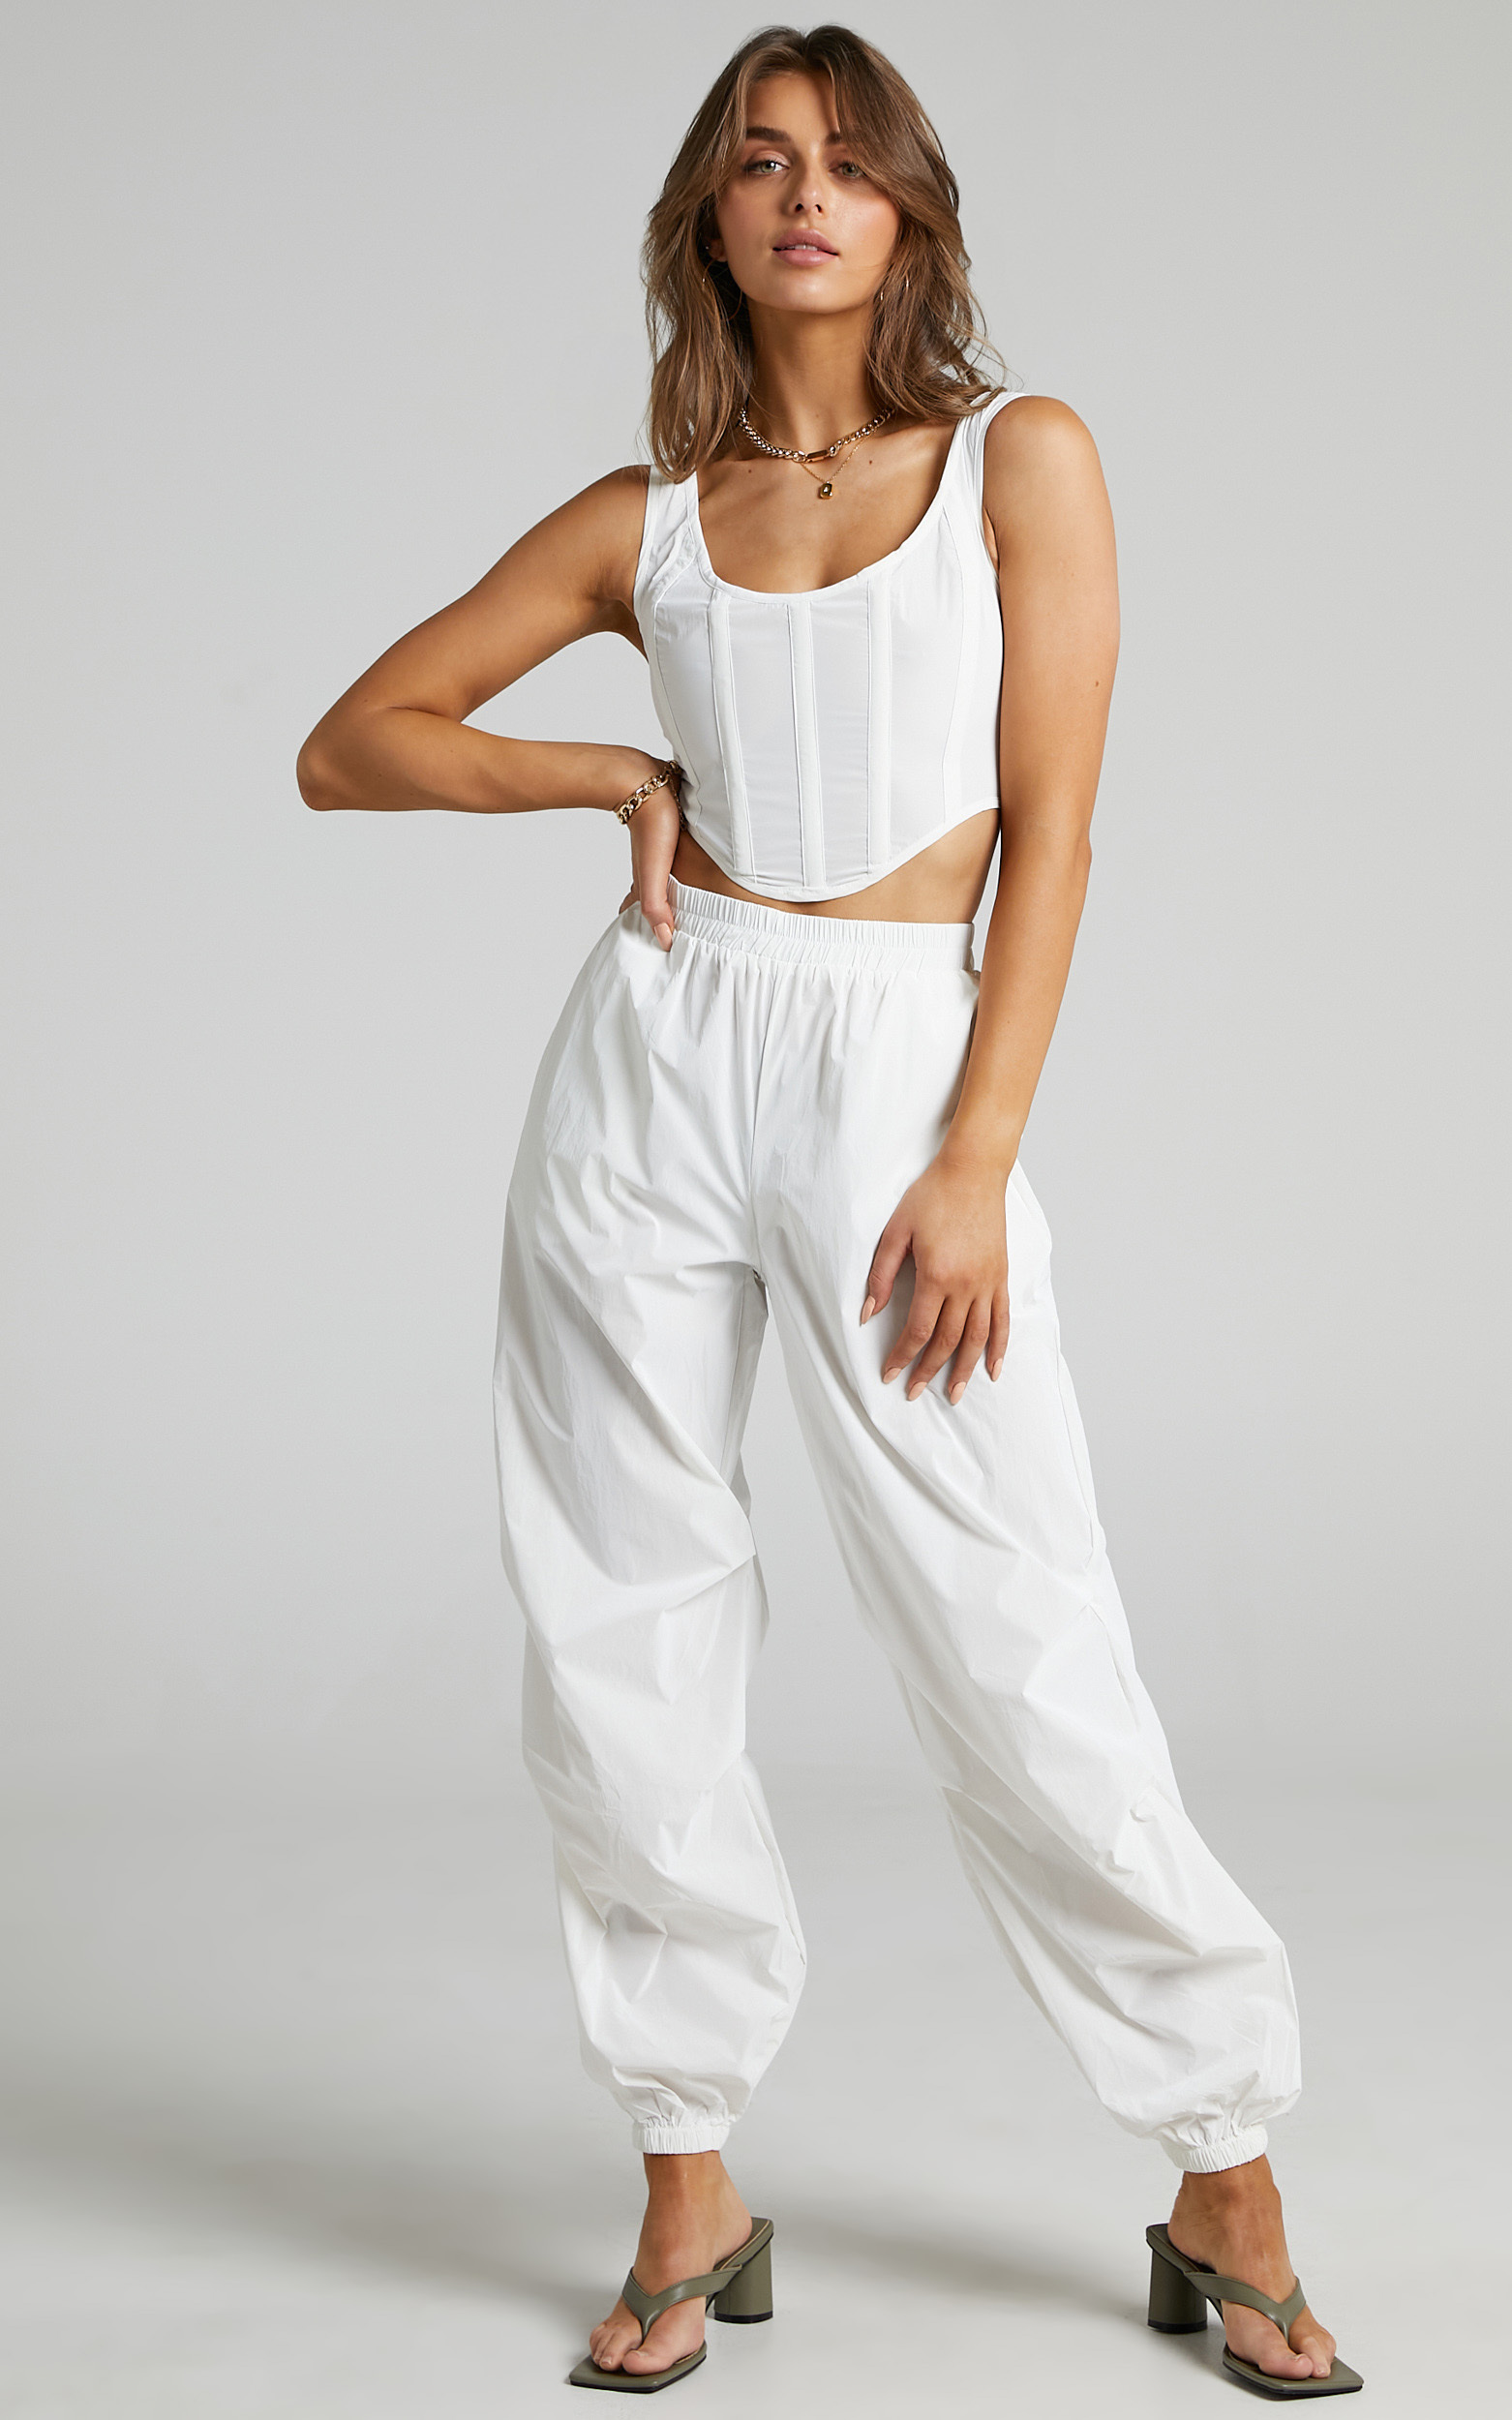 BY DYLN - Franco Pants in White - L, WHT2, hi-res image number null